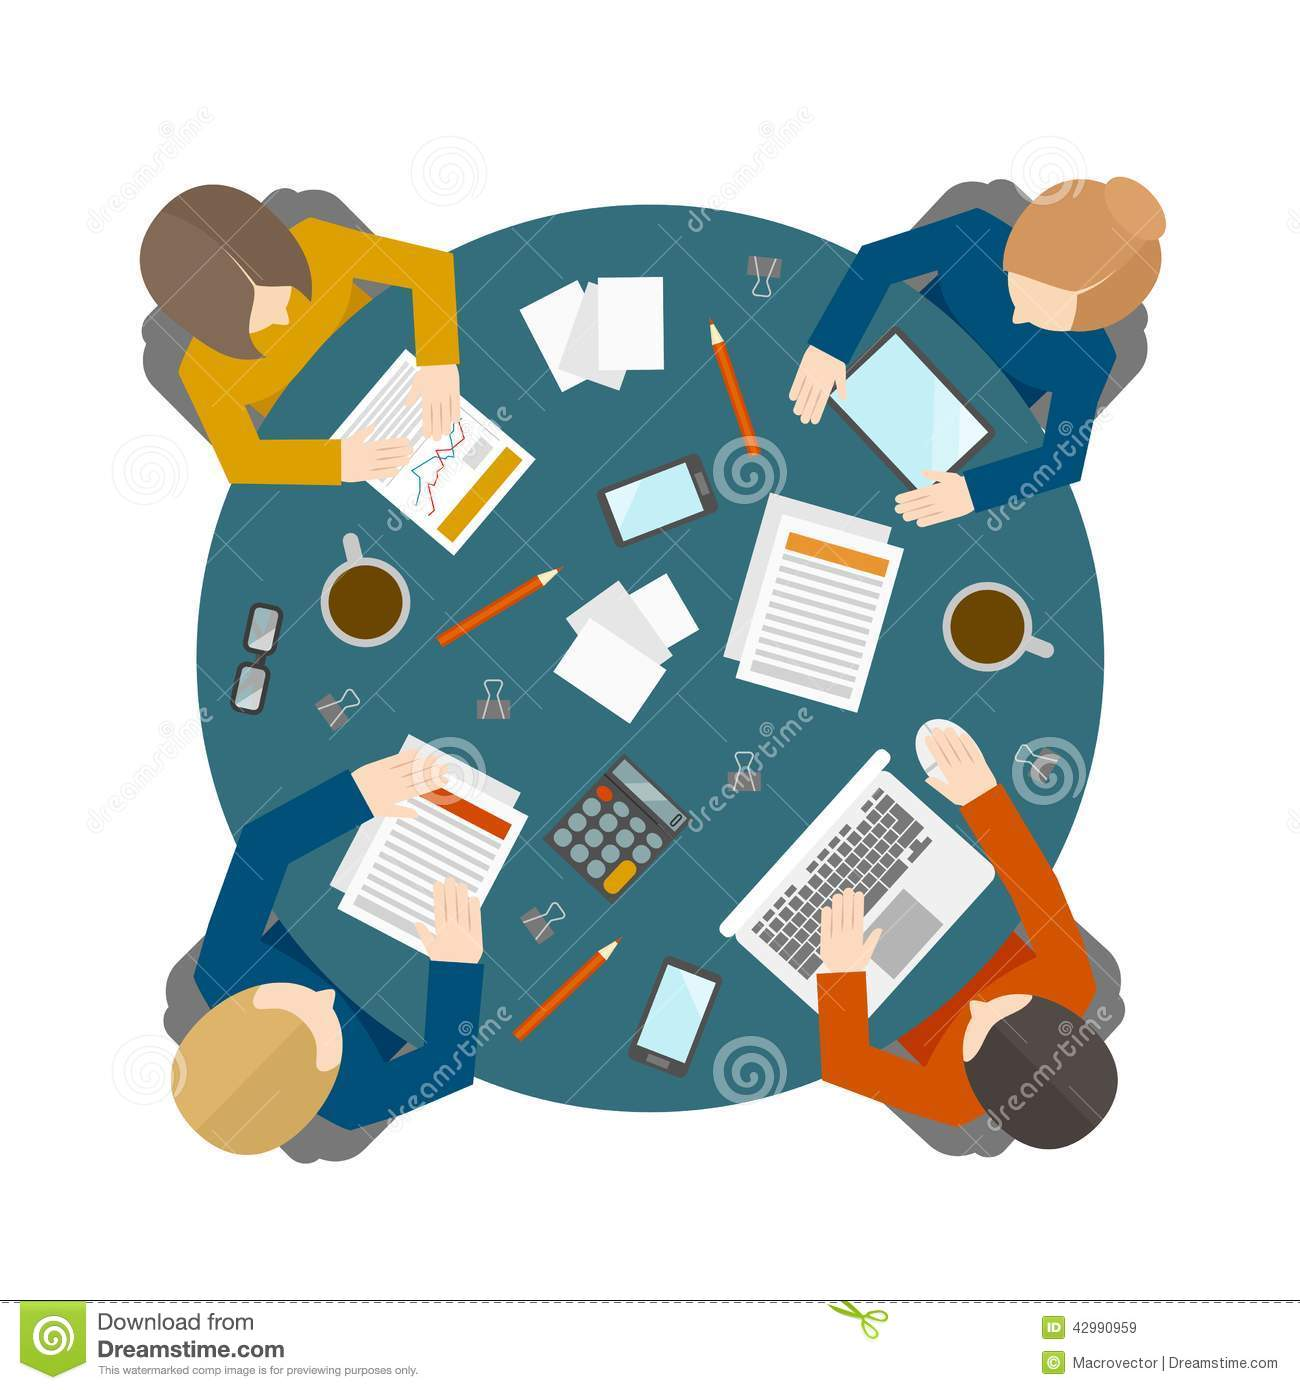 Round table meeting icon - Download Image Round Table Meeting Icon Round Table Meeting Icon Conference Table